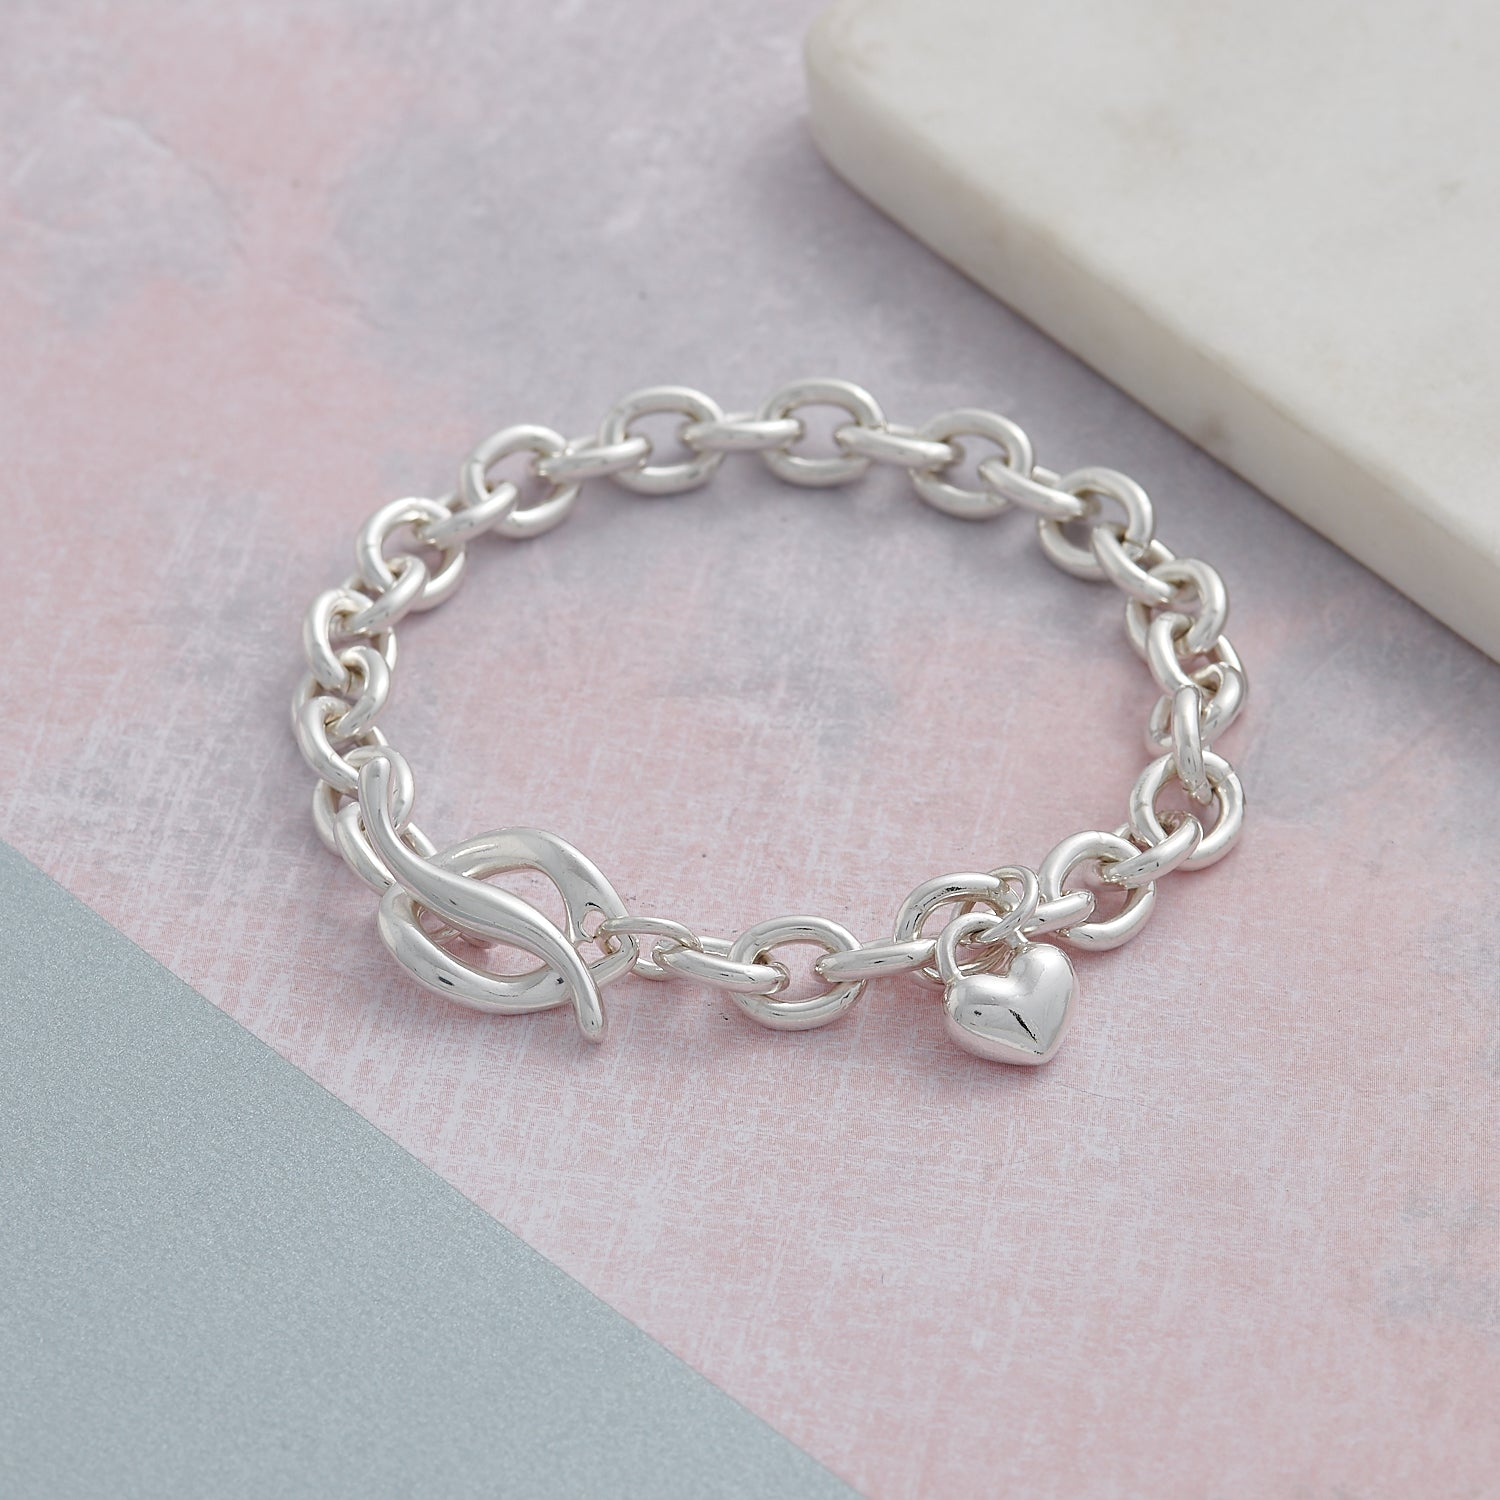 Solid sterling silver heart chunky T-bar traditional charm bracelet designer Scarlett Jewellery